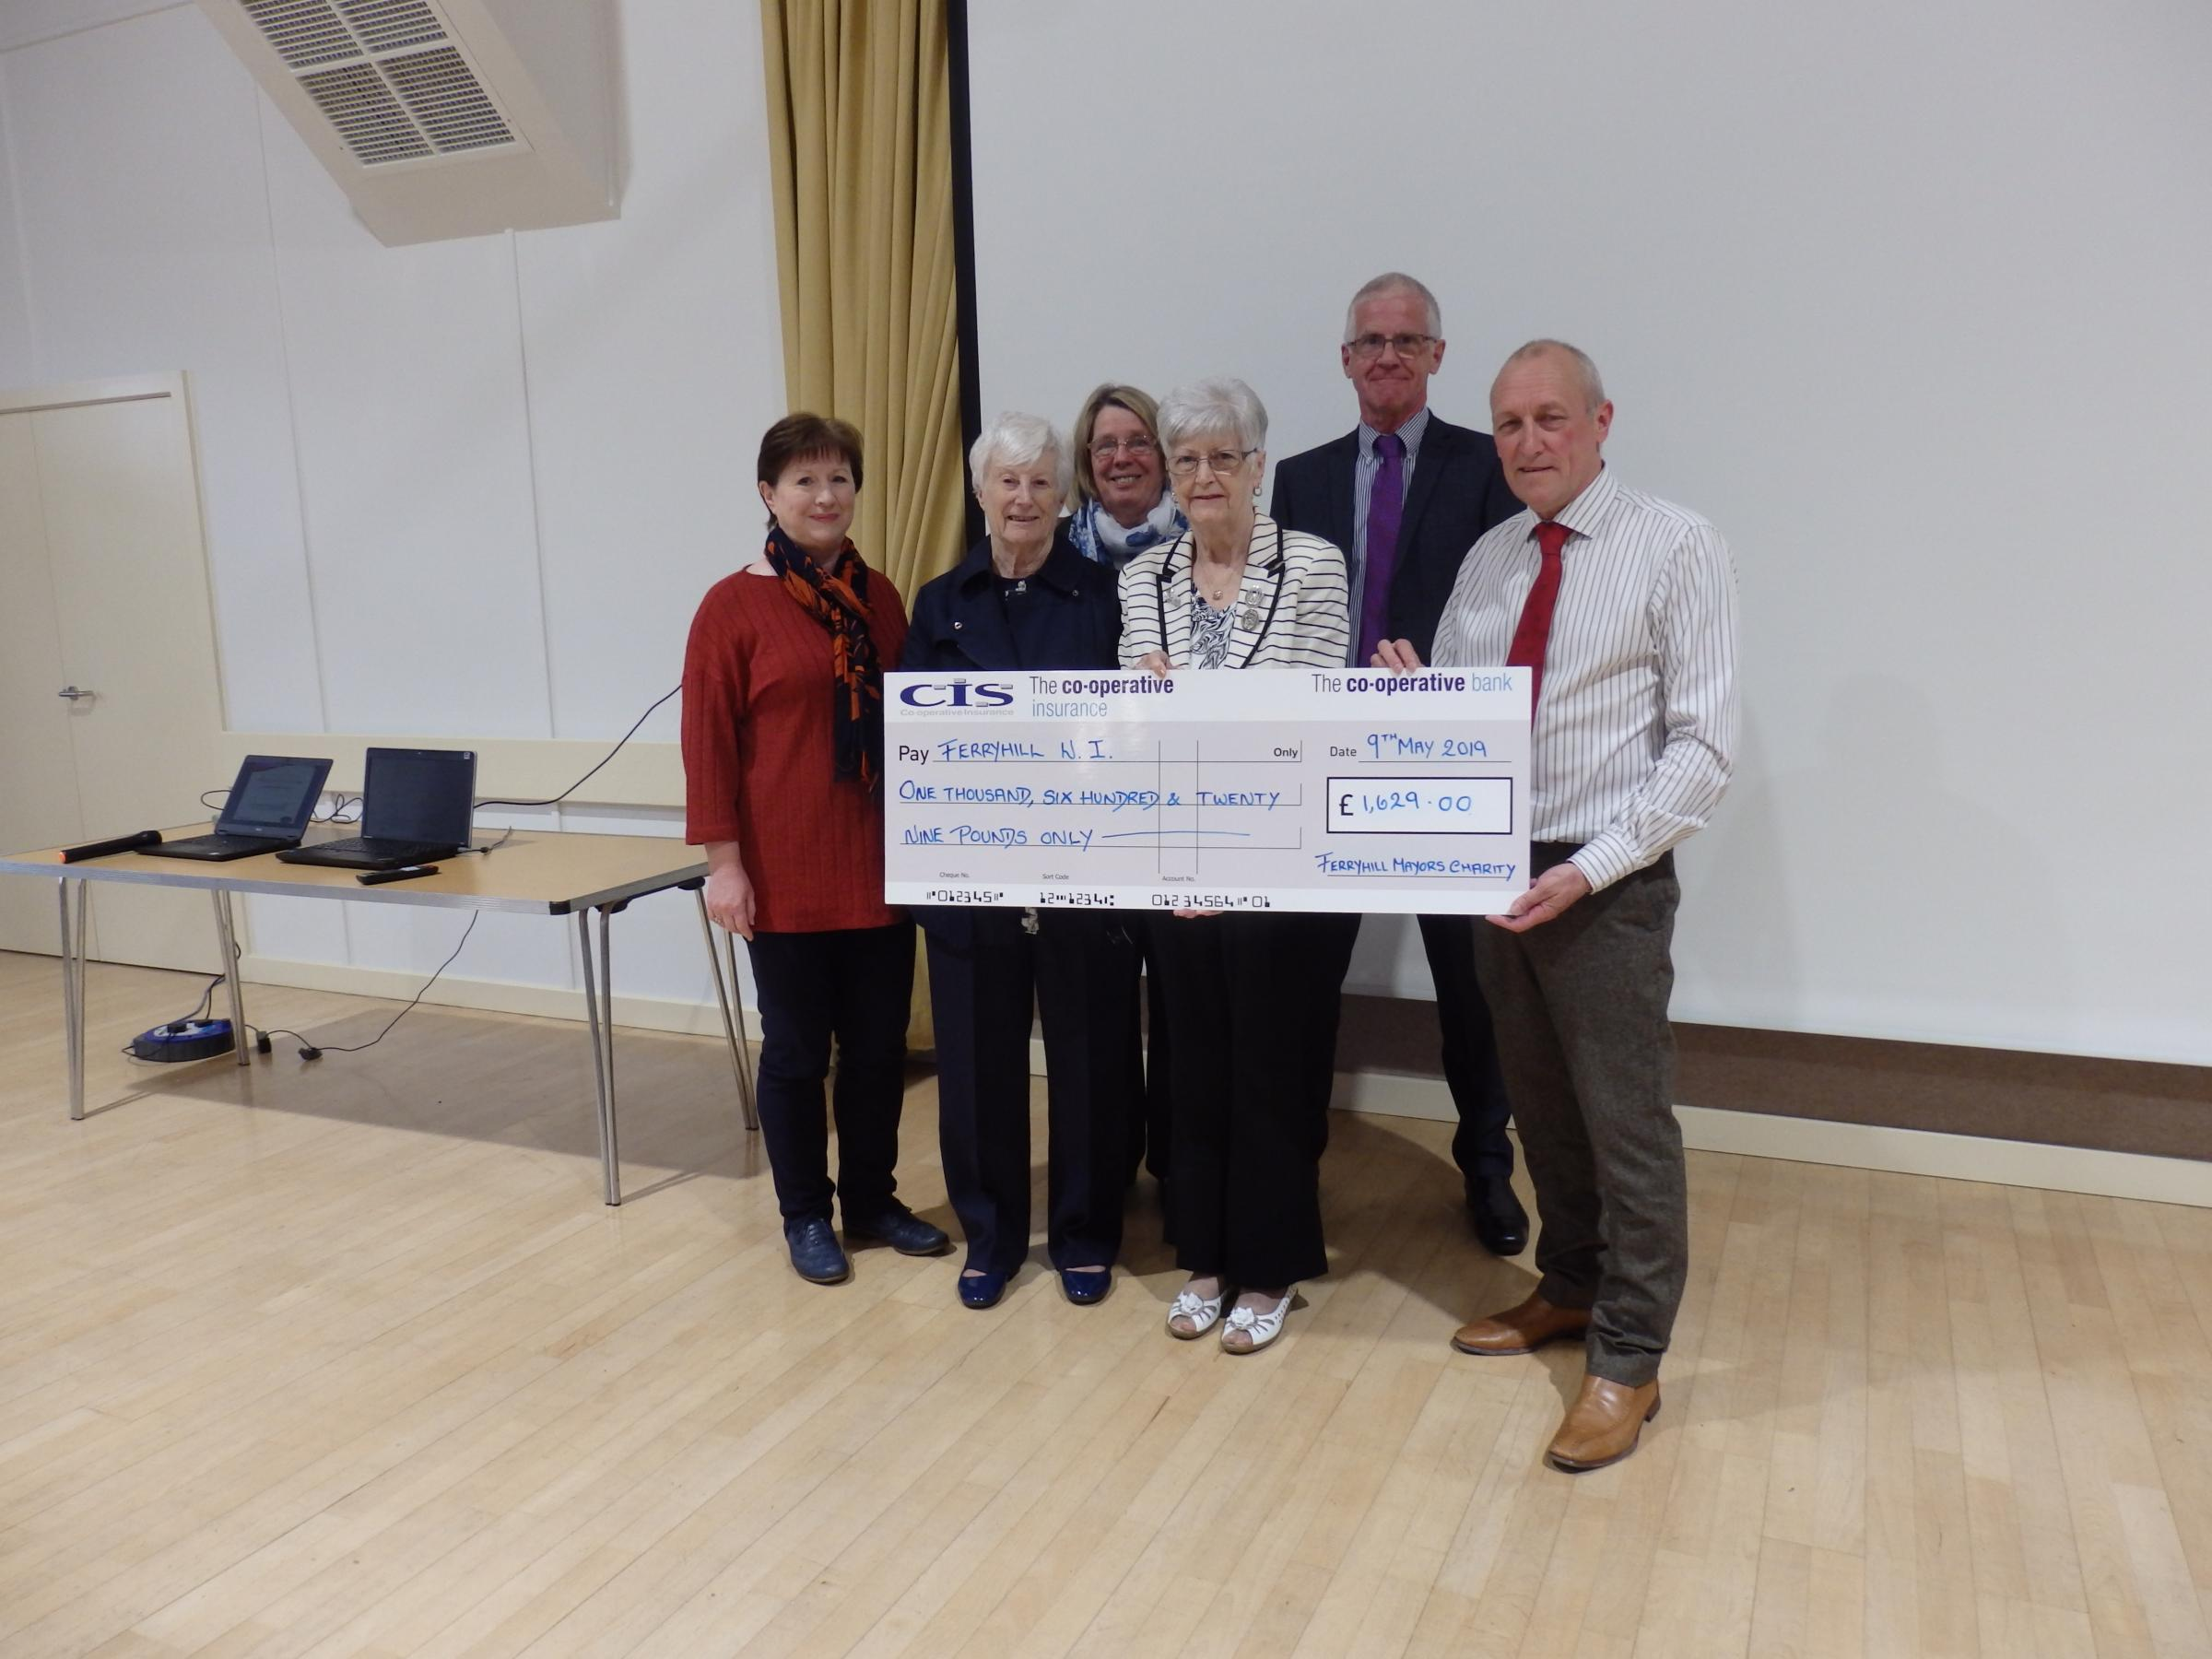 Ferryhill Mayor Dave Farry presents the proceeds of his year in office to Ferryhill WI, who shared it with Little rteasure Autism Group